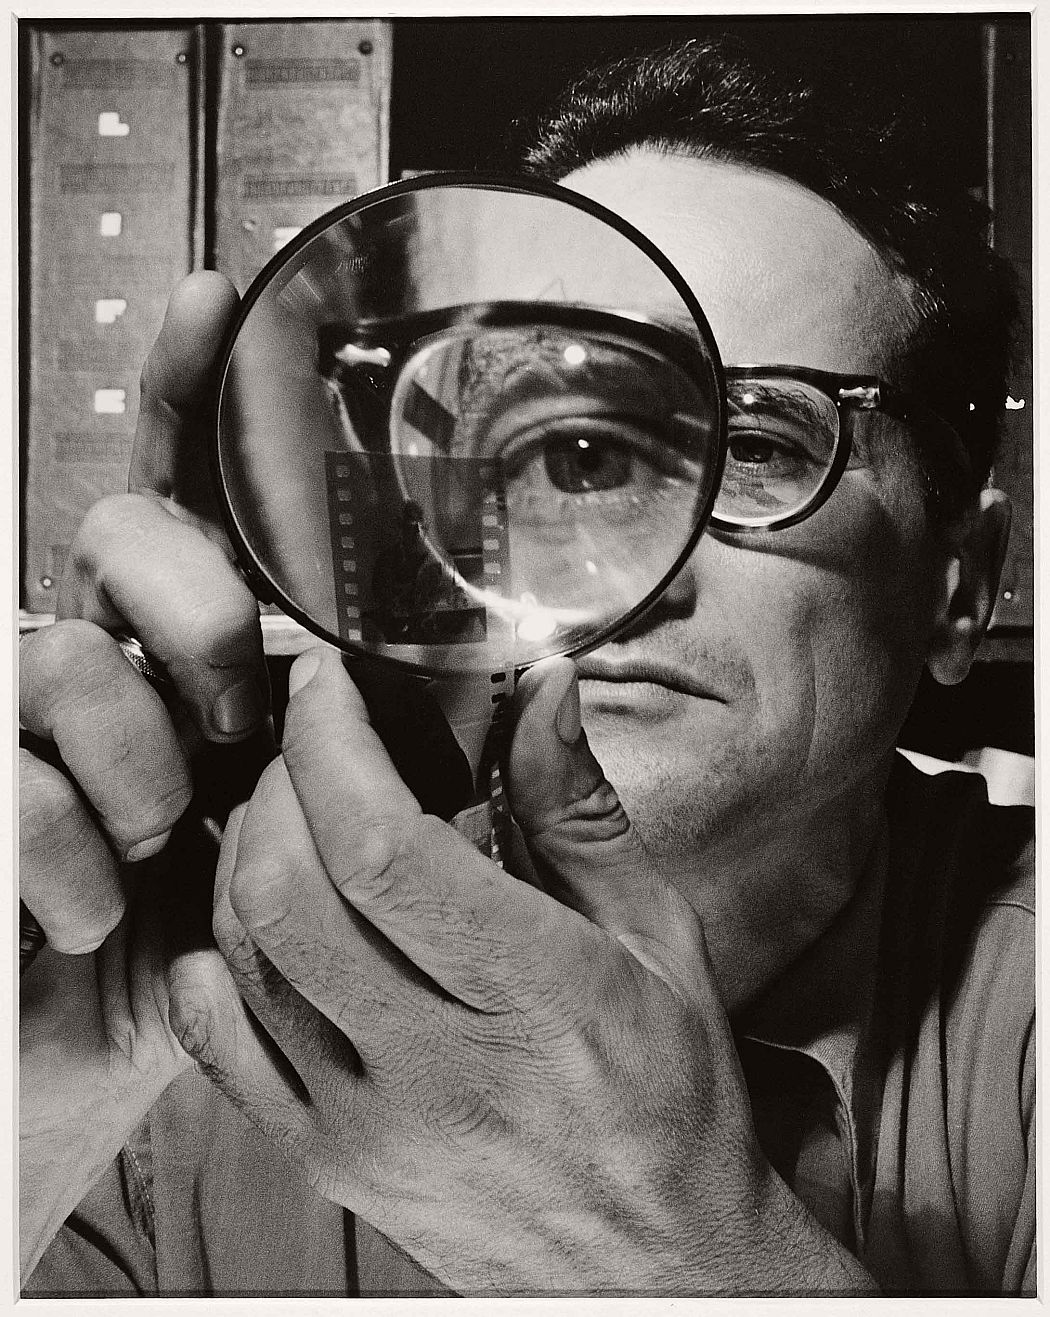 Andreas-Feininger-Self-portrait-1946